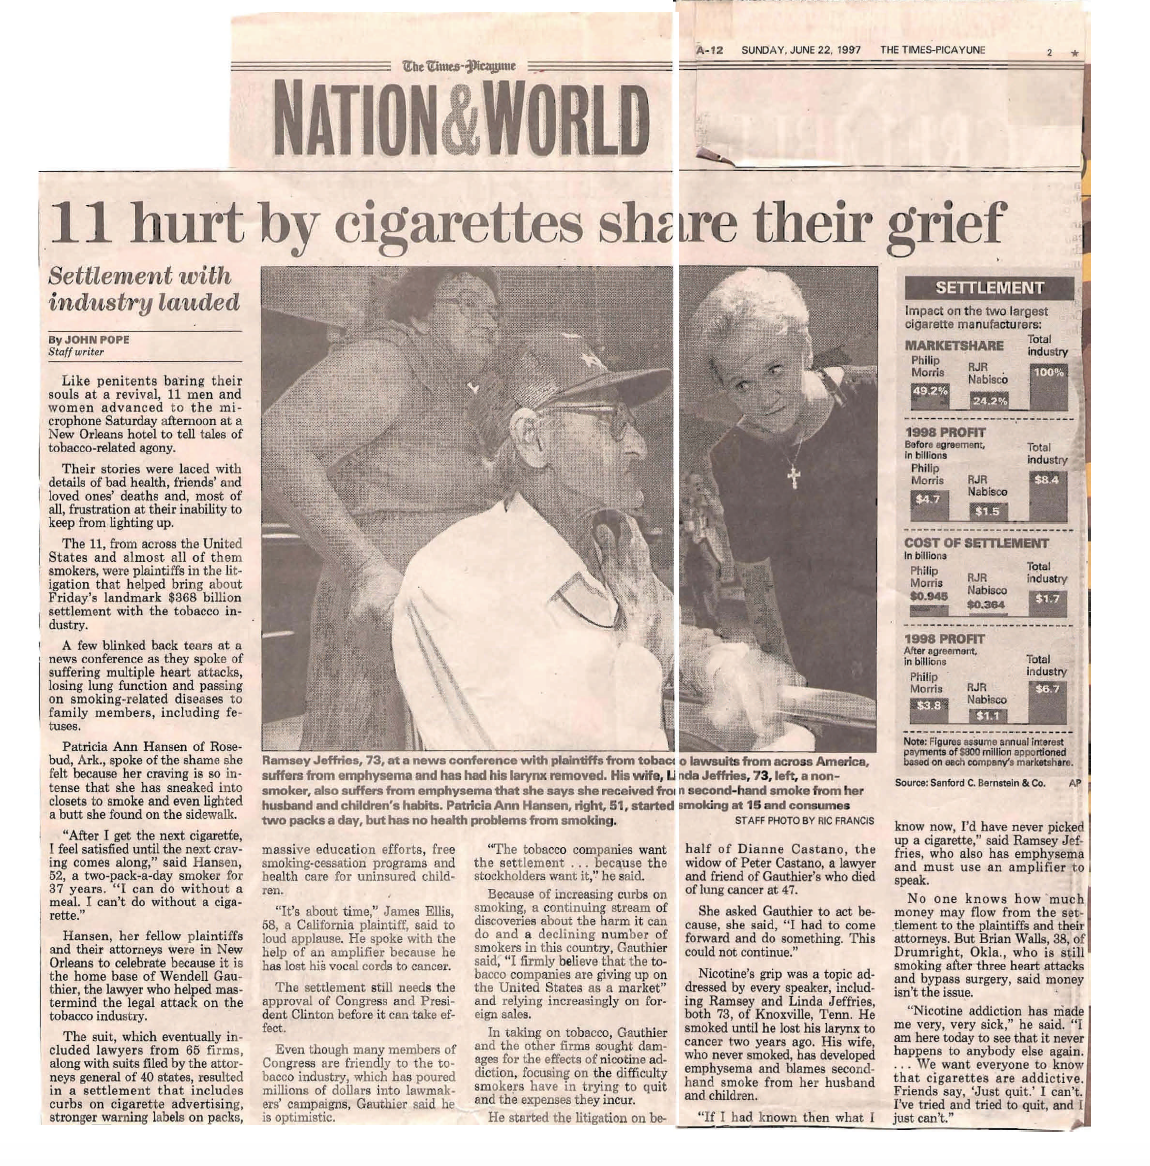 Times Picauyune 11 hurt by cigarettes share their grief